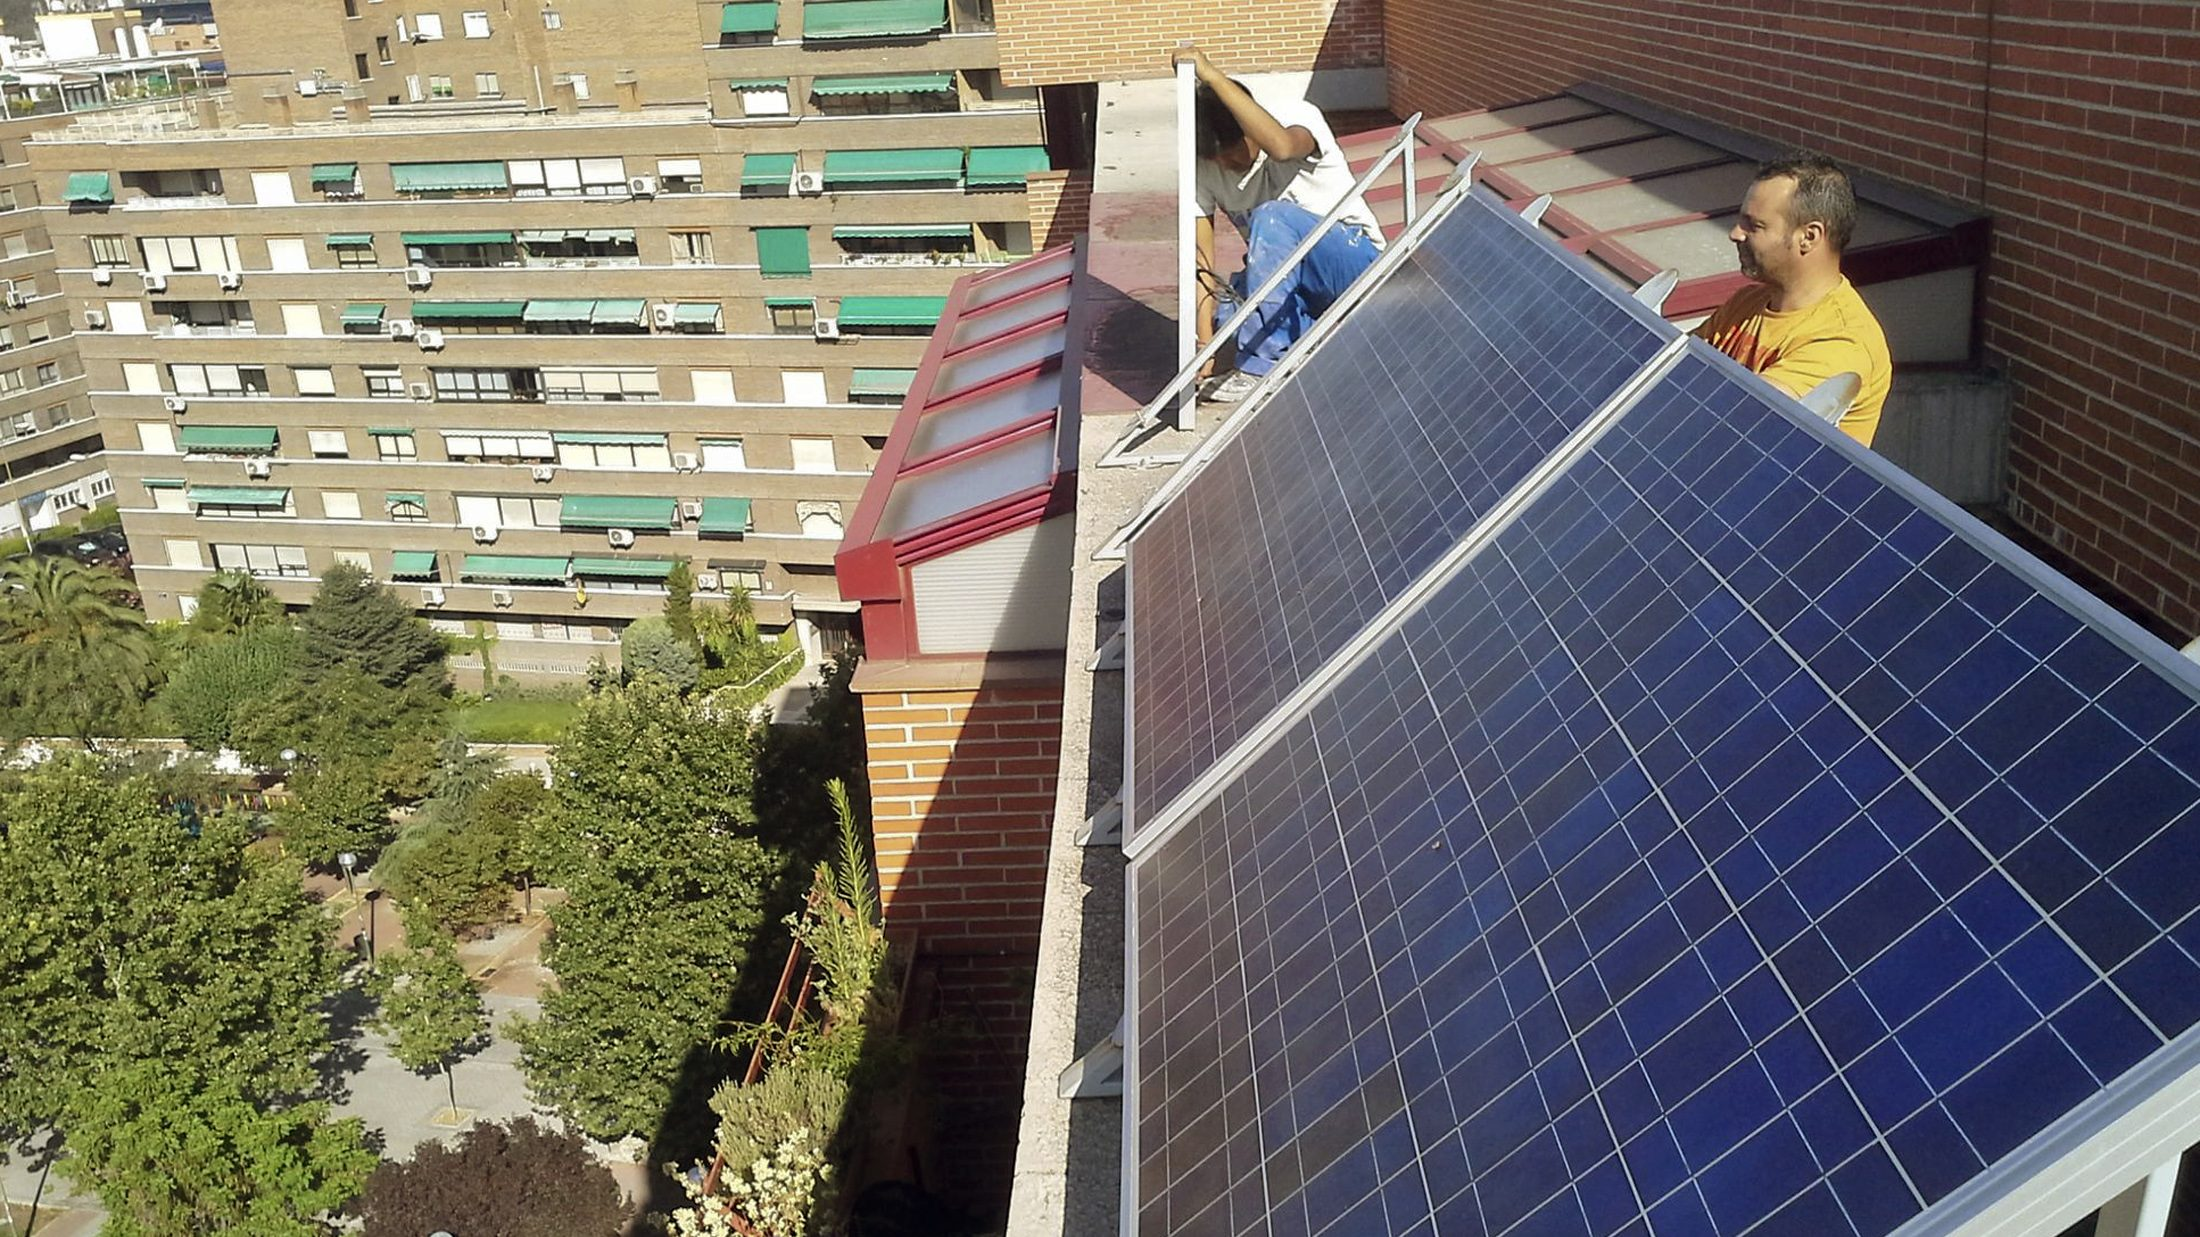 Workers remove solar panels from the roof of a building where Spanish ecological architect Inaki Alonso has his home in Madrid July 24, 2013. Two weeks after Spain's conservative government unveiled a sweeping energy reform with levies on green energy, Alonso hired two men to take down the roof-top solar panels he had put up six months earlier. Calculating the cost of using solar panels after a new government levy that will make it more expensive to generate your own energy, Alonso - an ecological architect - said the numbers did not add up. And by keeping the panels without connecting them to the electricity grid as mandated in a new energy law, Alonso faced a government fine of between 6 million and 30 million euros ($8 million-$40 million). Picture taken July 24, 2013.